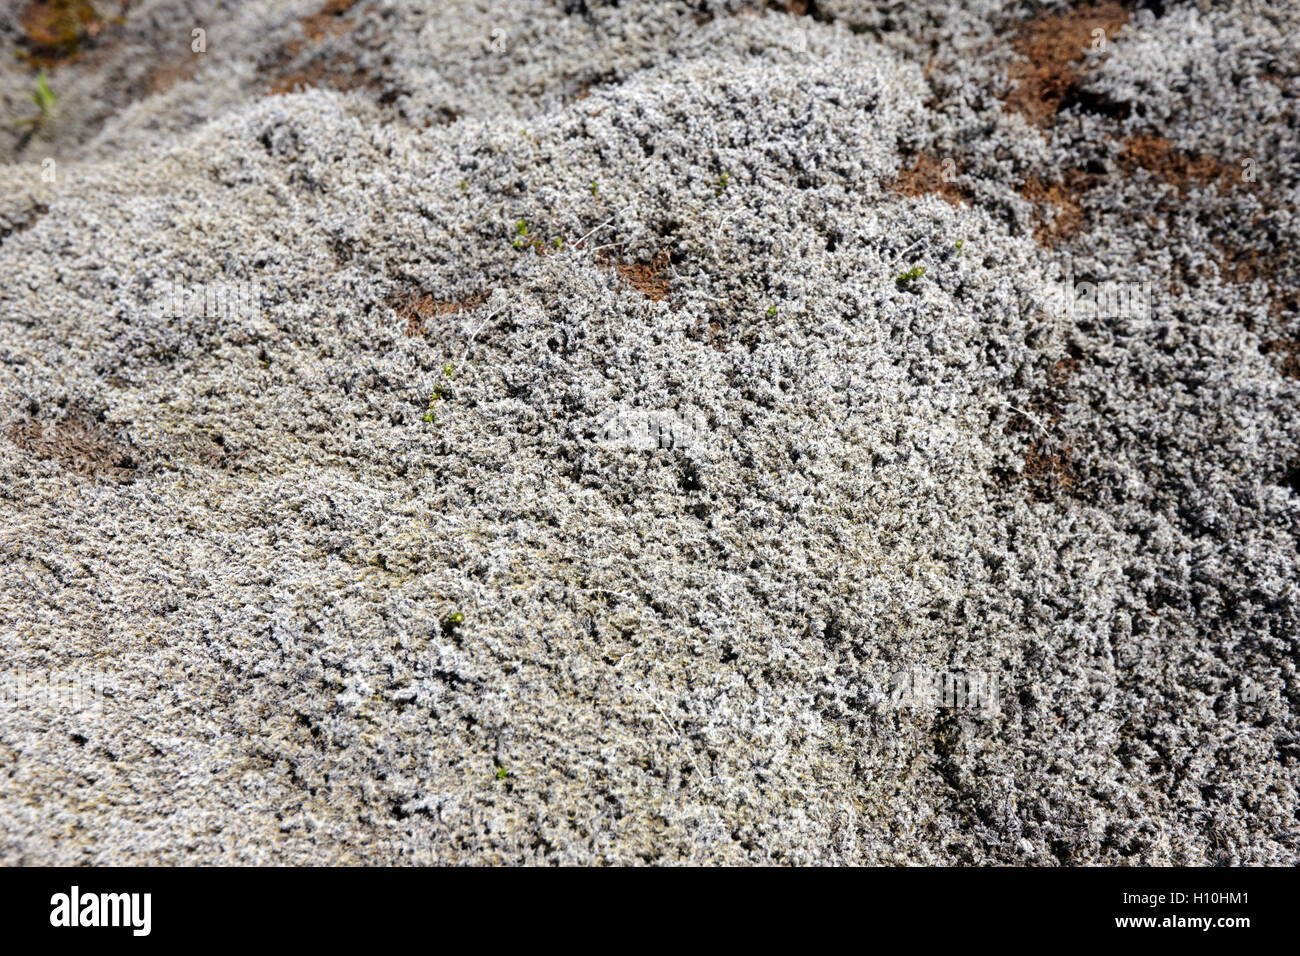 icelandic moss covering lava field in Iceland Stock Photo